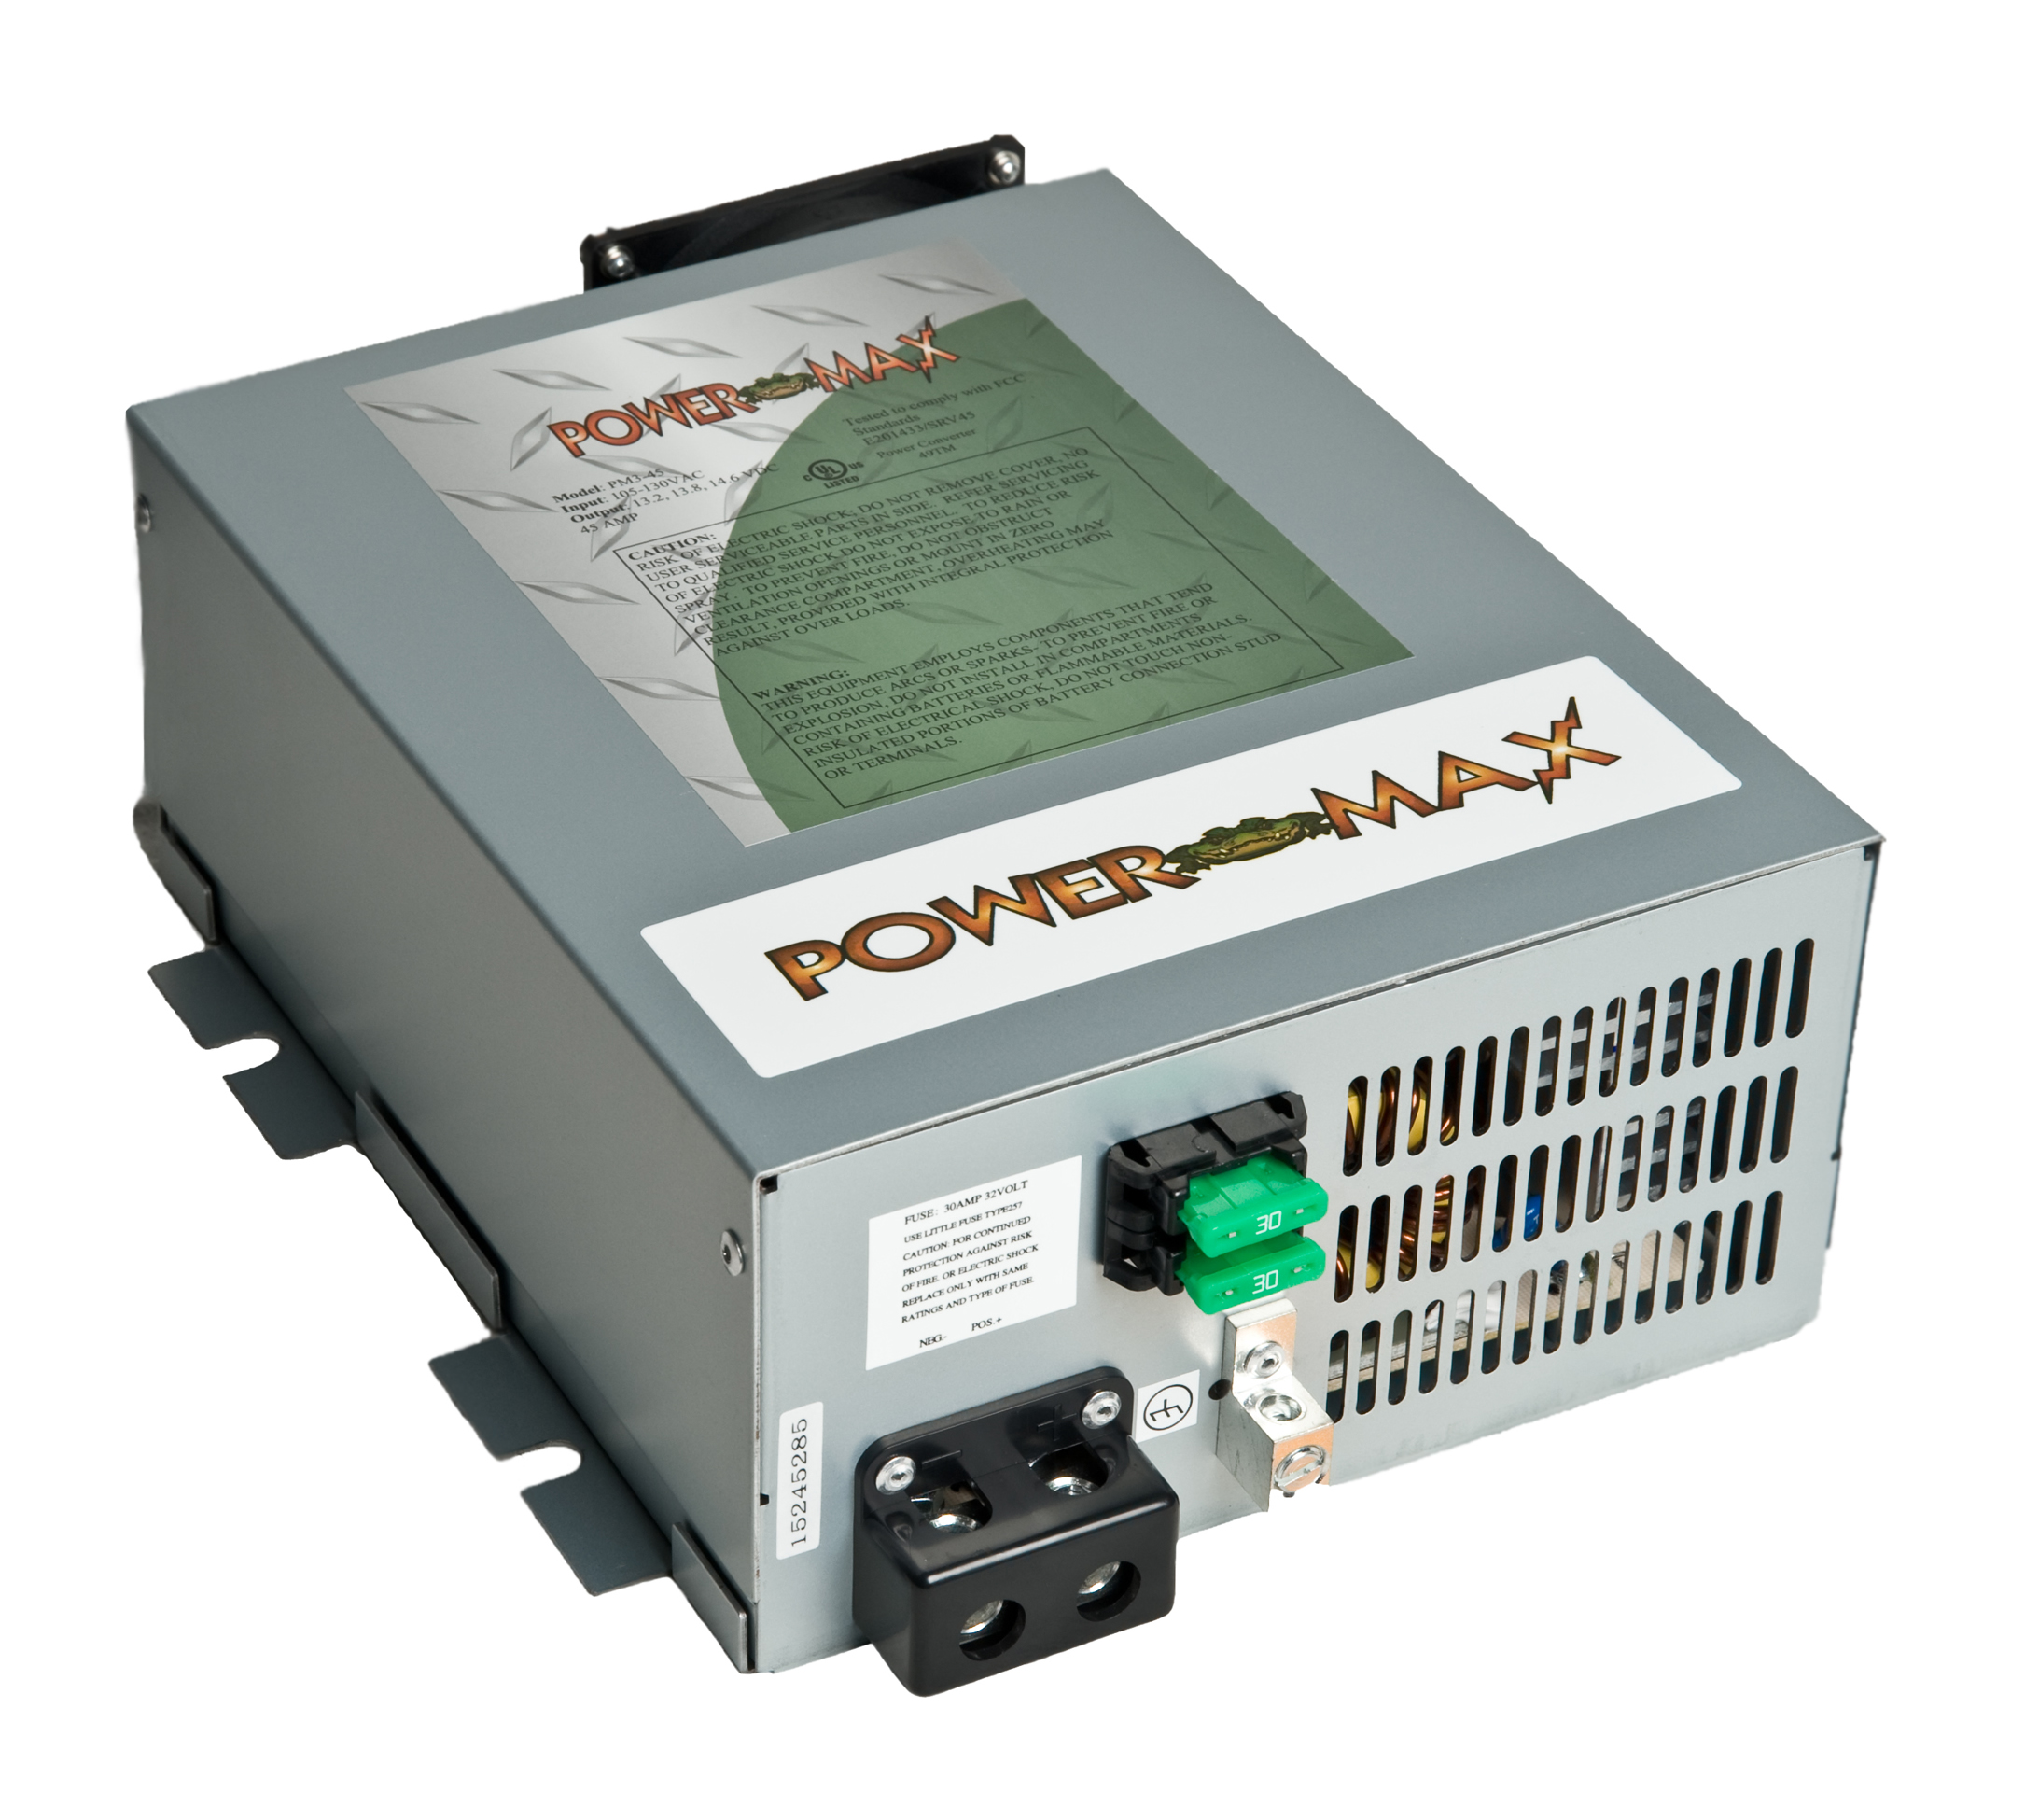 pm4 series 2 pm4 series power max converters  at n-0.co